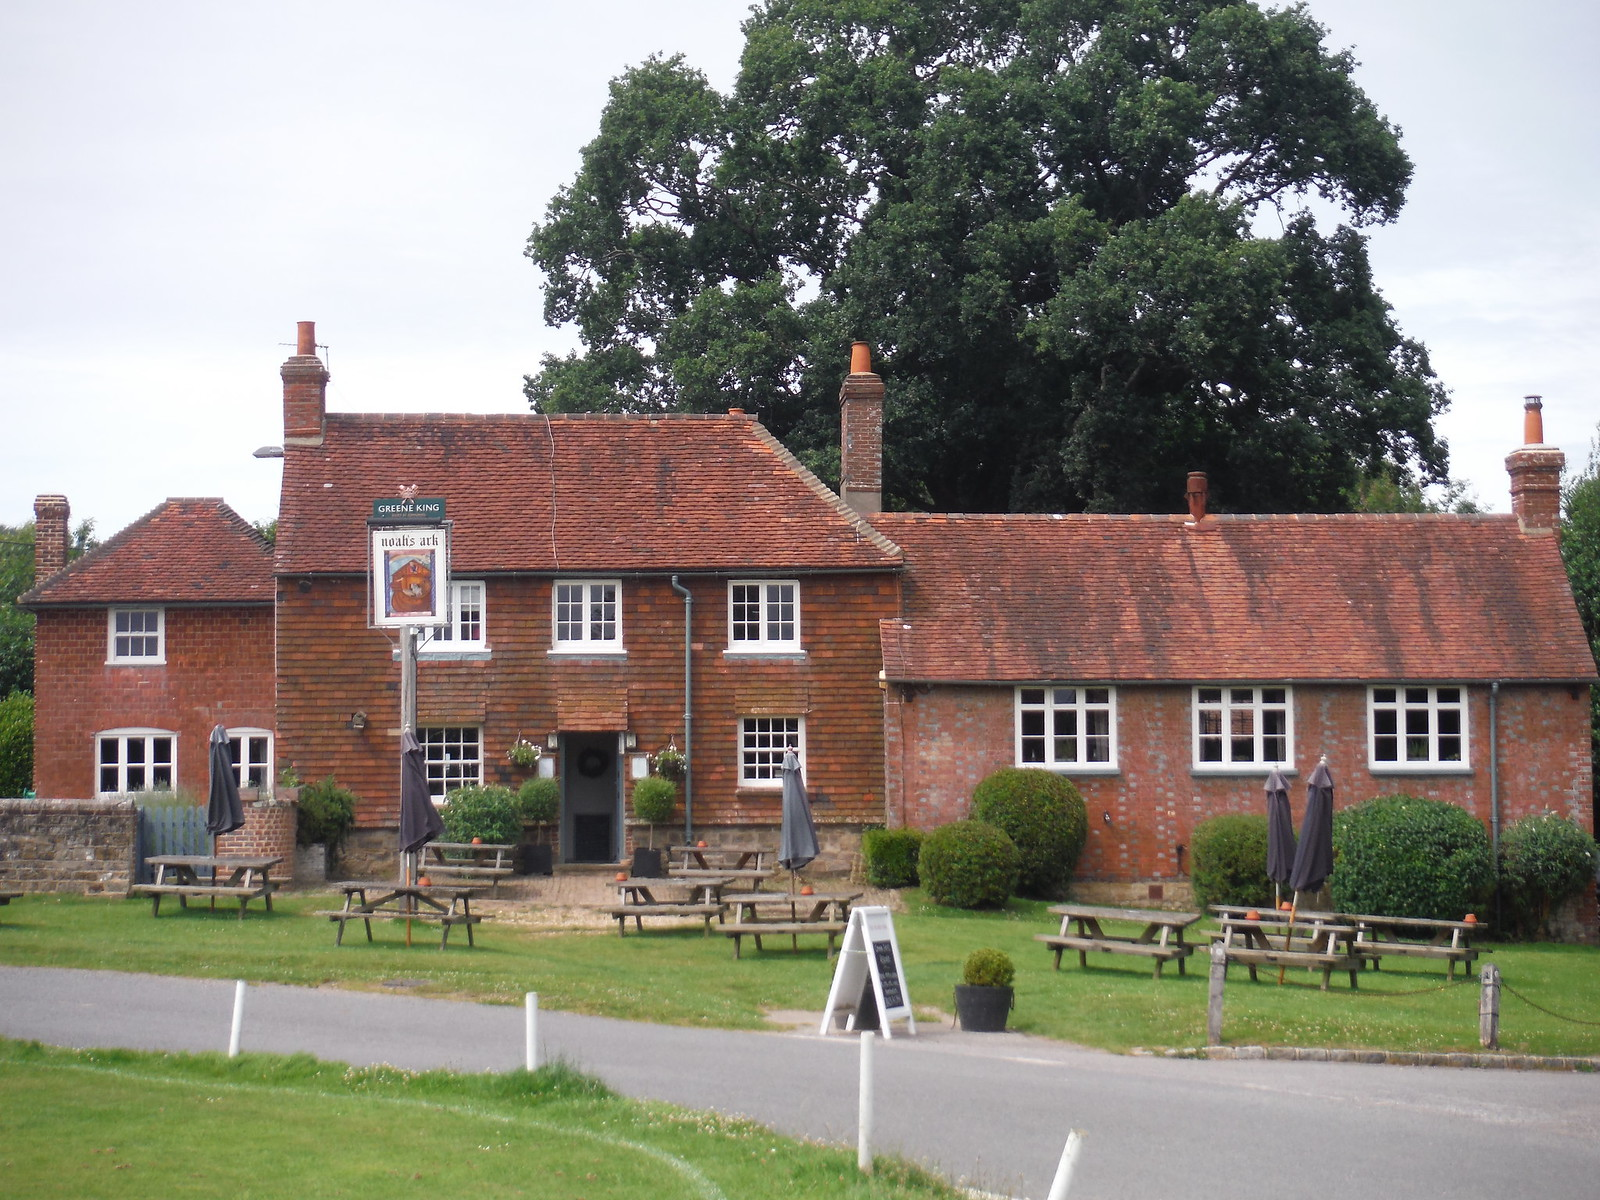 The Noah's Ark Inn, Lurgashall SWC Walk 48 Haslemere to Midhurst (via Lurgashall or Lickfold)